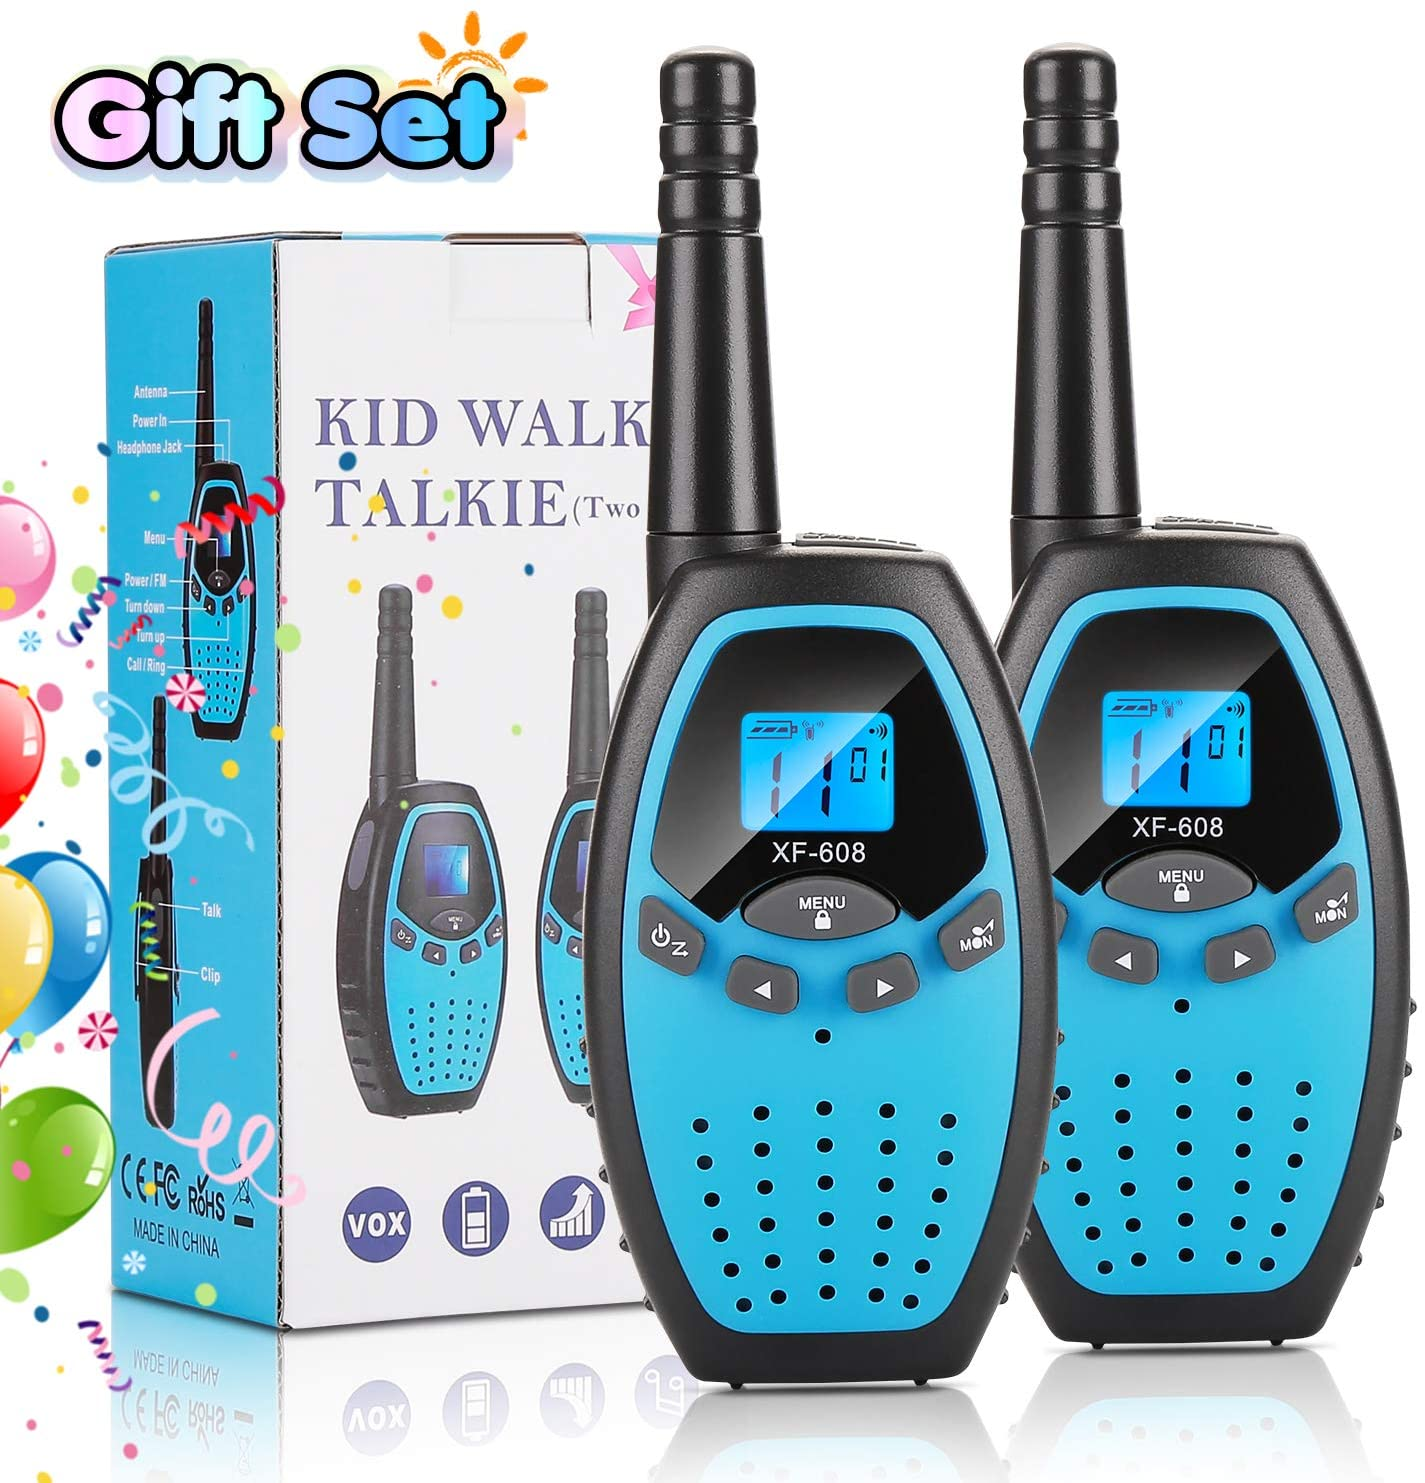 FITNATE Walkie Talkies for Kids 3 Kilometers Range, 22 Channels, Kids Toy with Battery Operated LCD Backlit Display, Perfect for Outdoor Adventures, Playground Amusement Park (2 Pack, Blue)